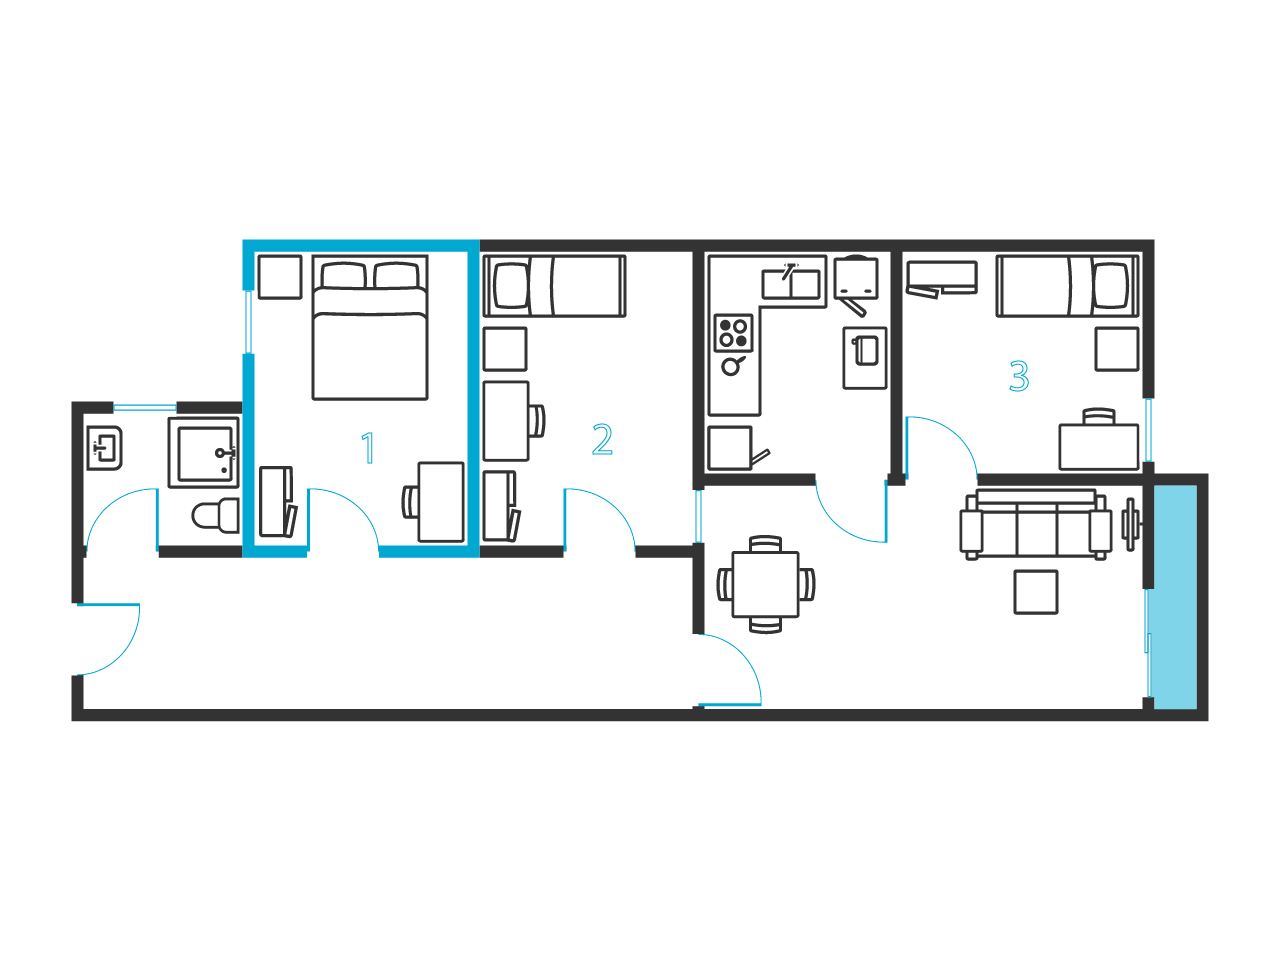 Tricycle Smoby as well Sebenico together with Vandervelden Court moreover Prg099 Apartment Brevnov Prague 6 further Hotel Floor Plan. on chair sofa bed single